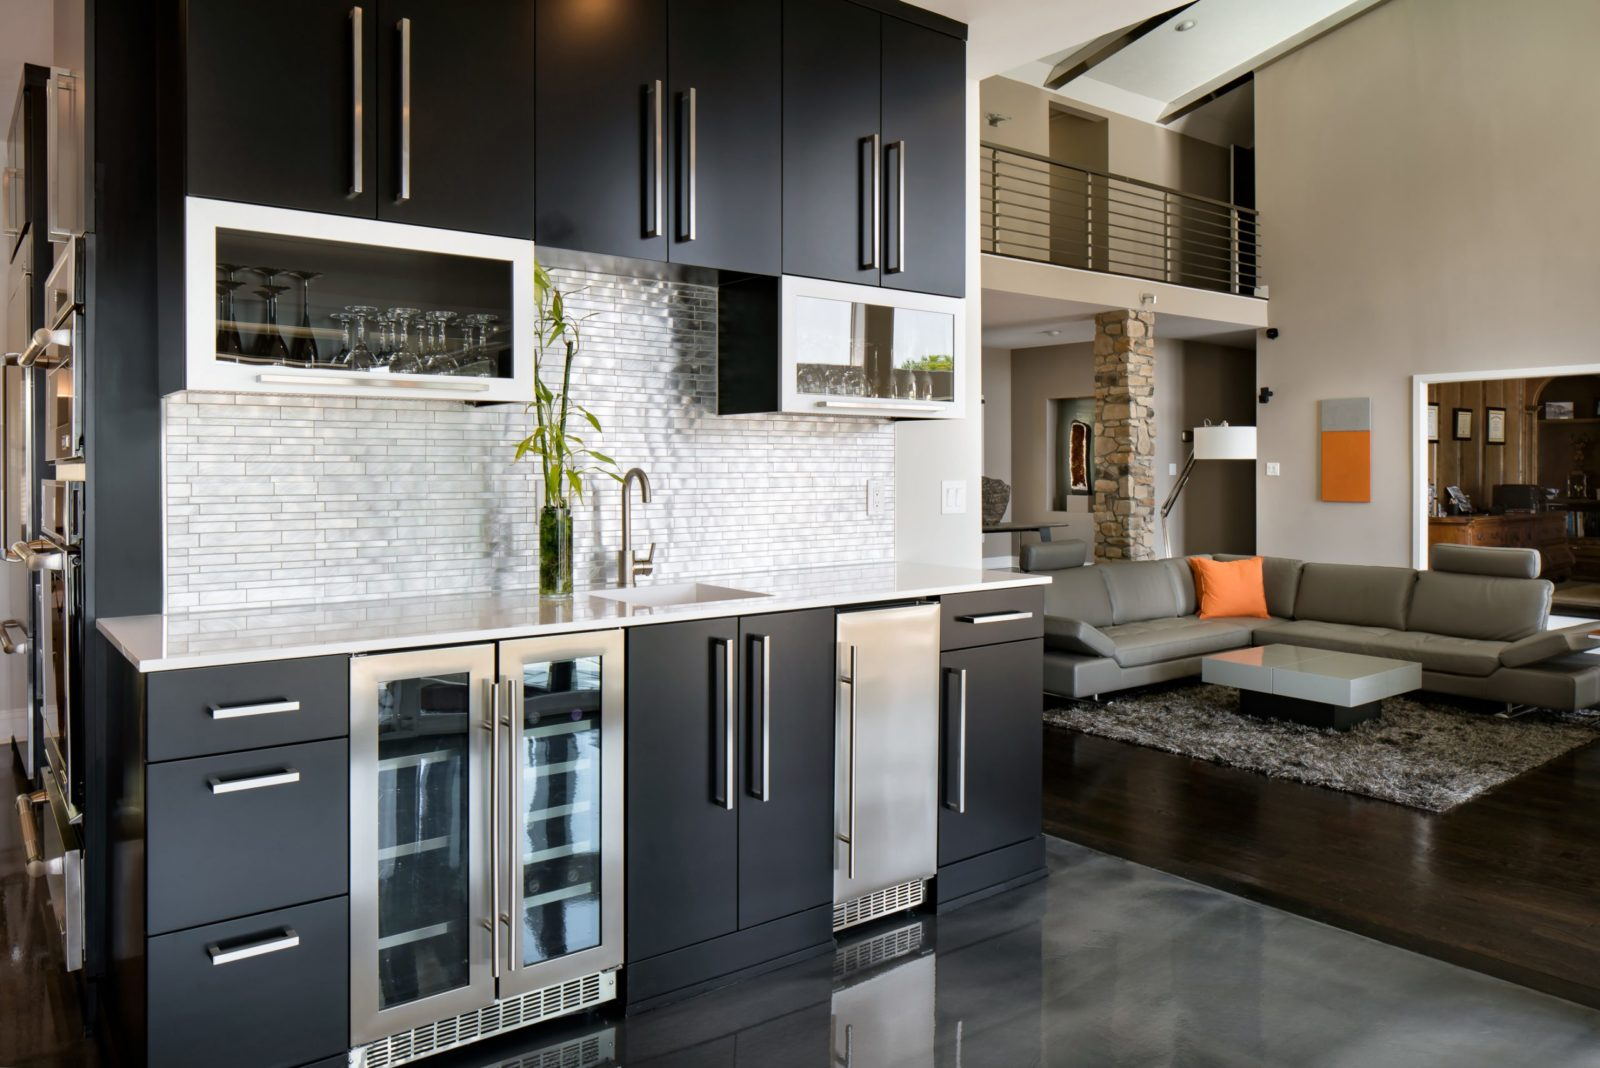 Modern wet bar with black cabinets and ice maker